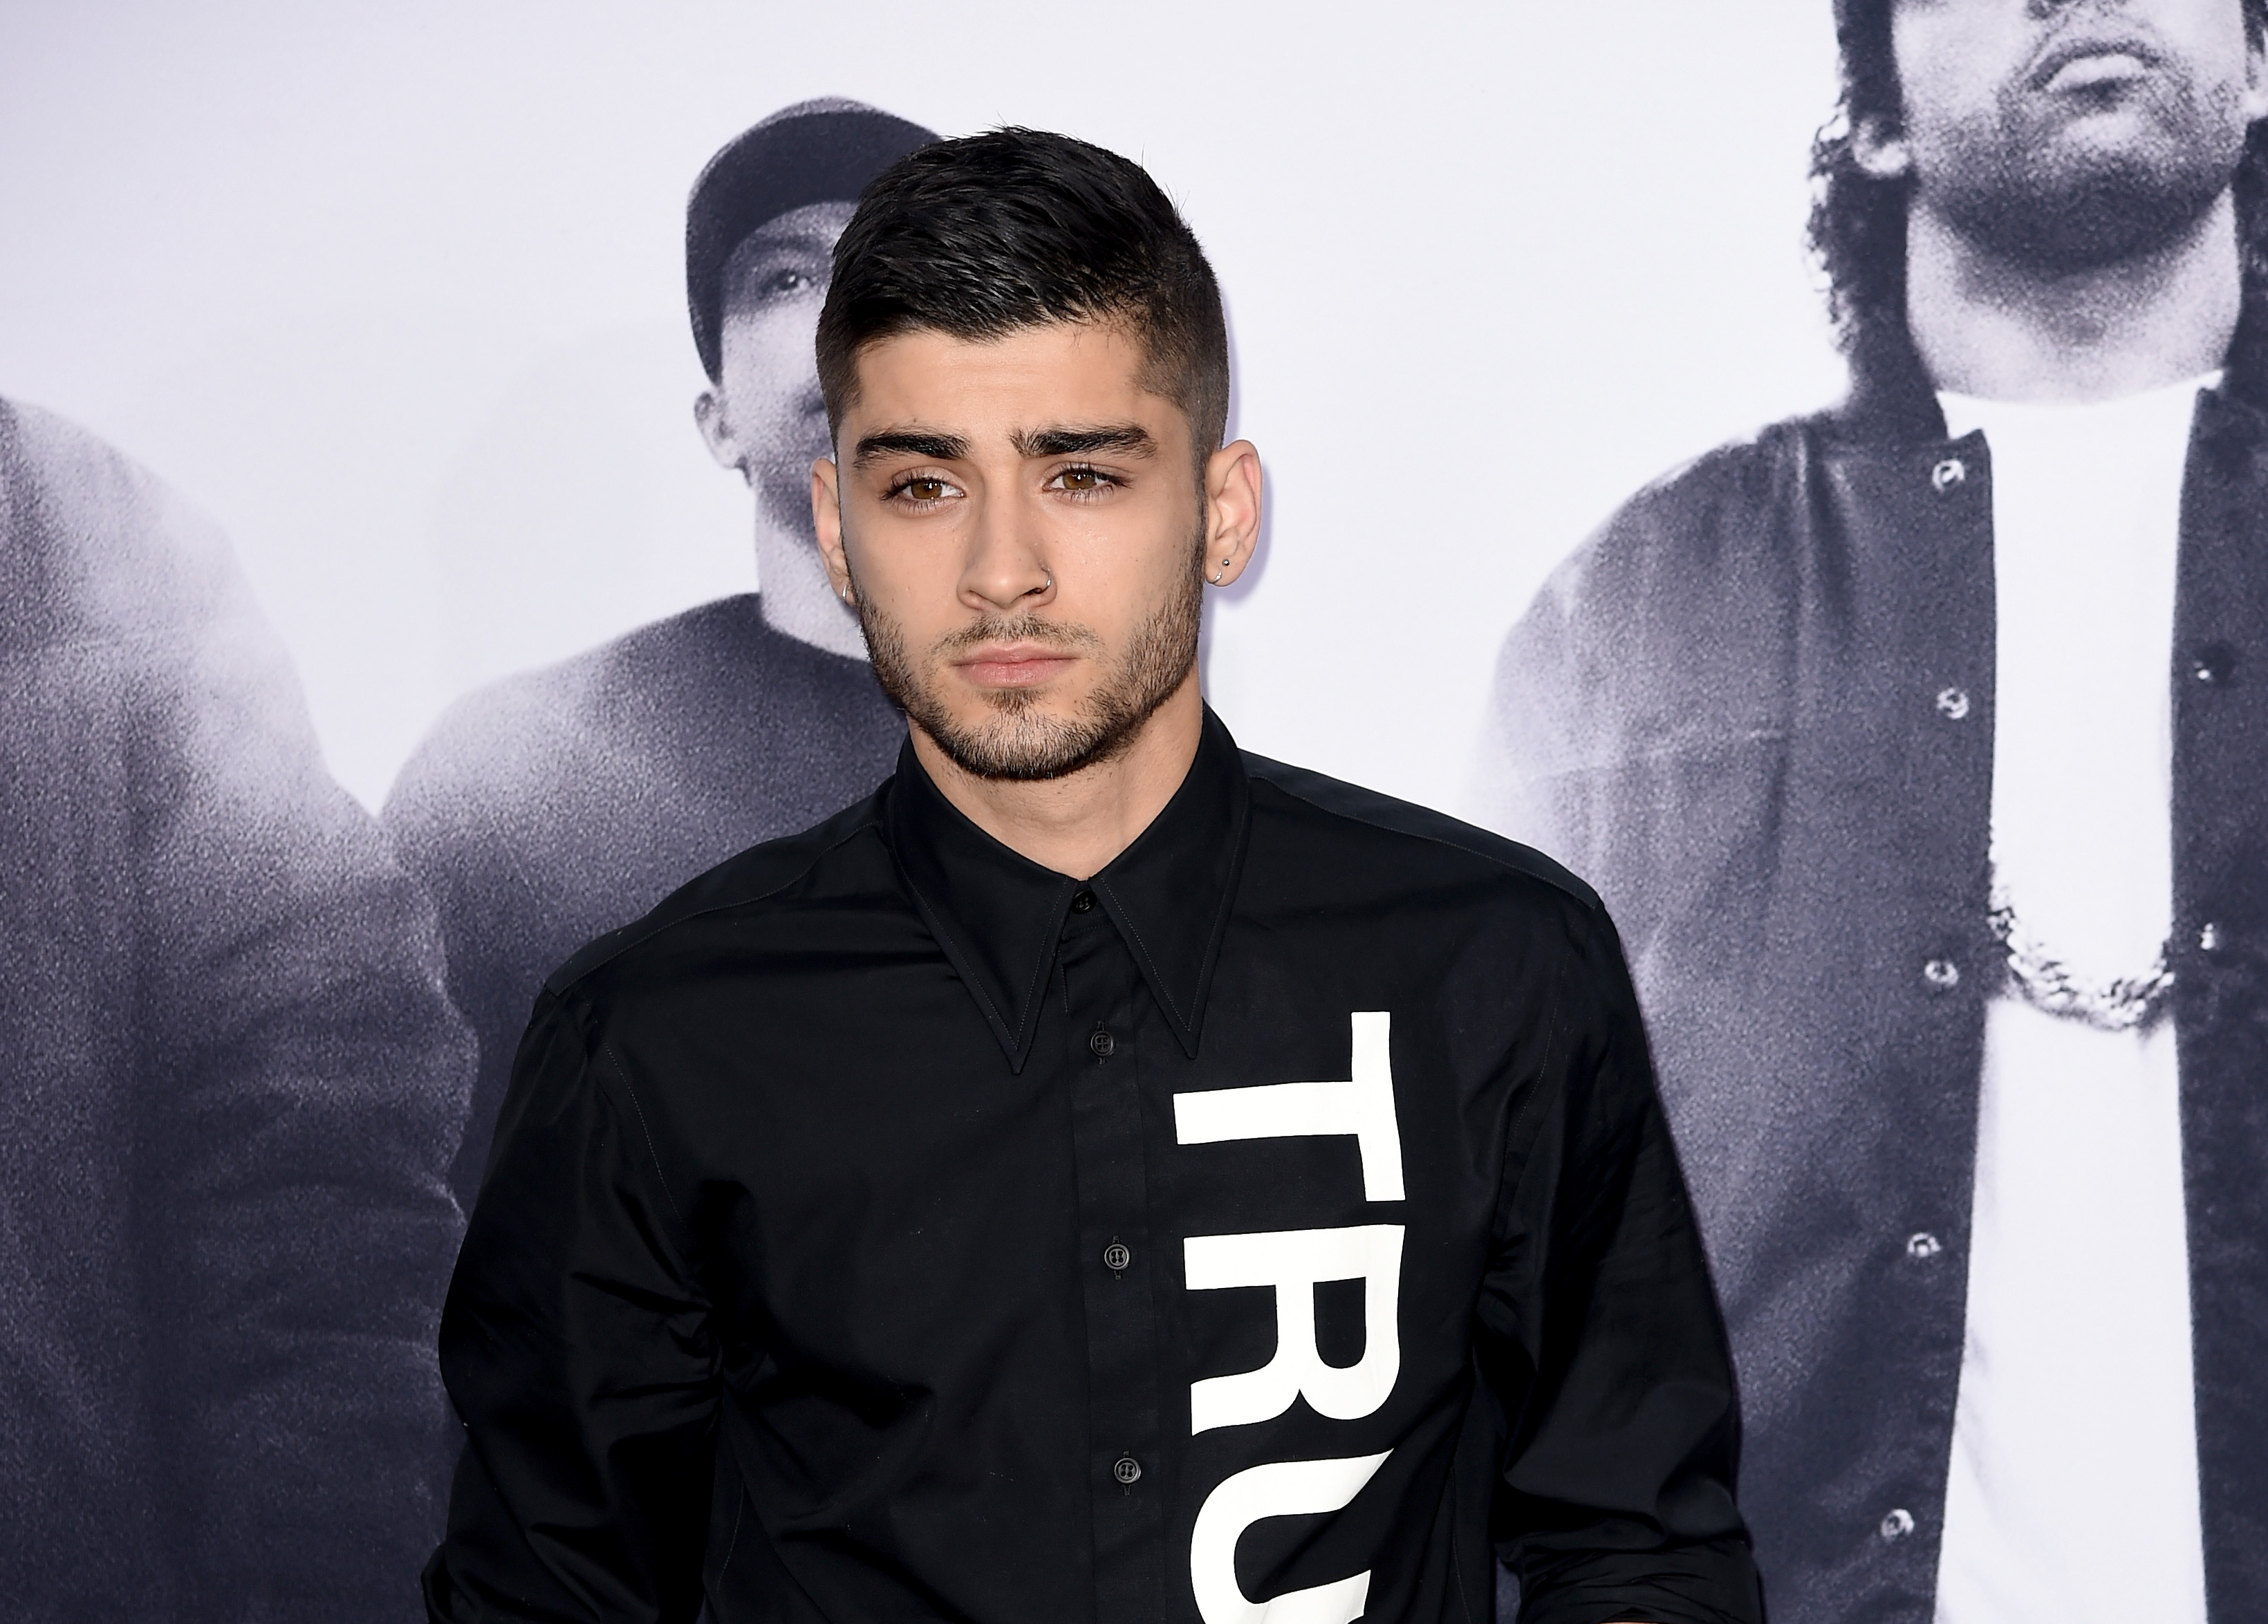 Zayn Malik announces debut solo album Mind of Mine on Beats One